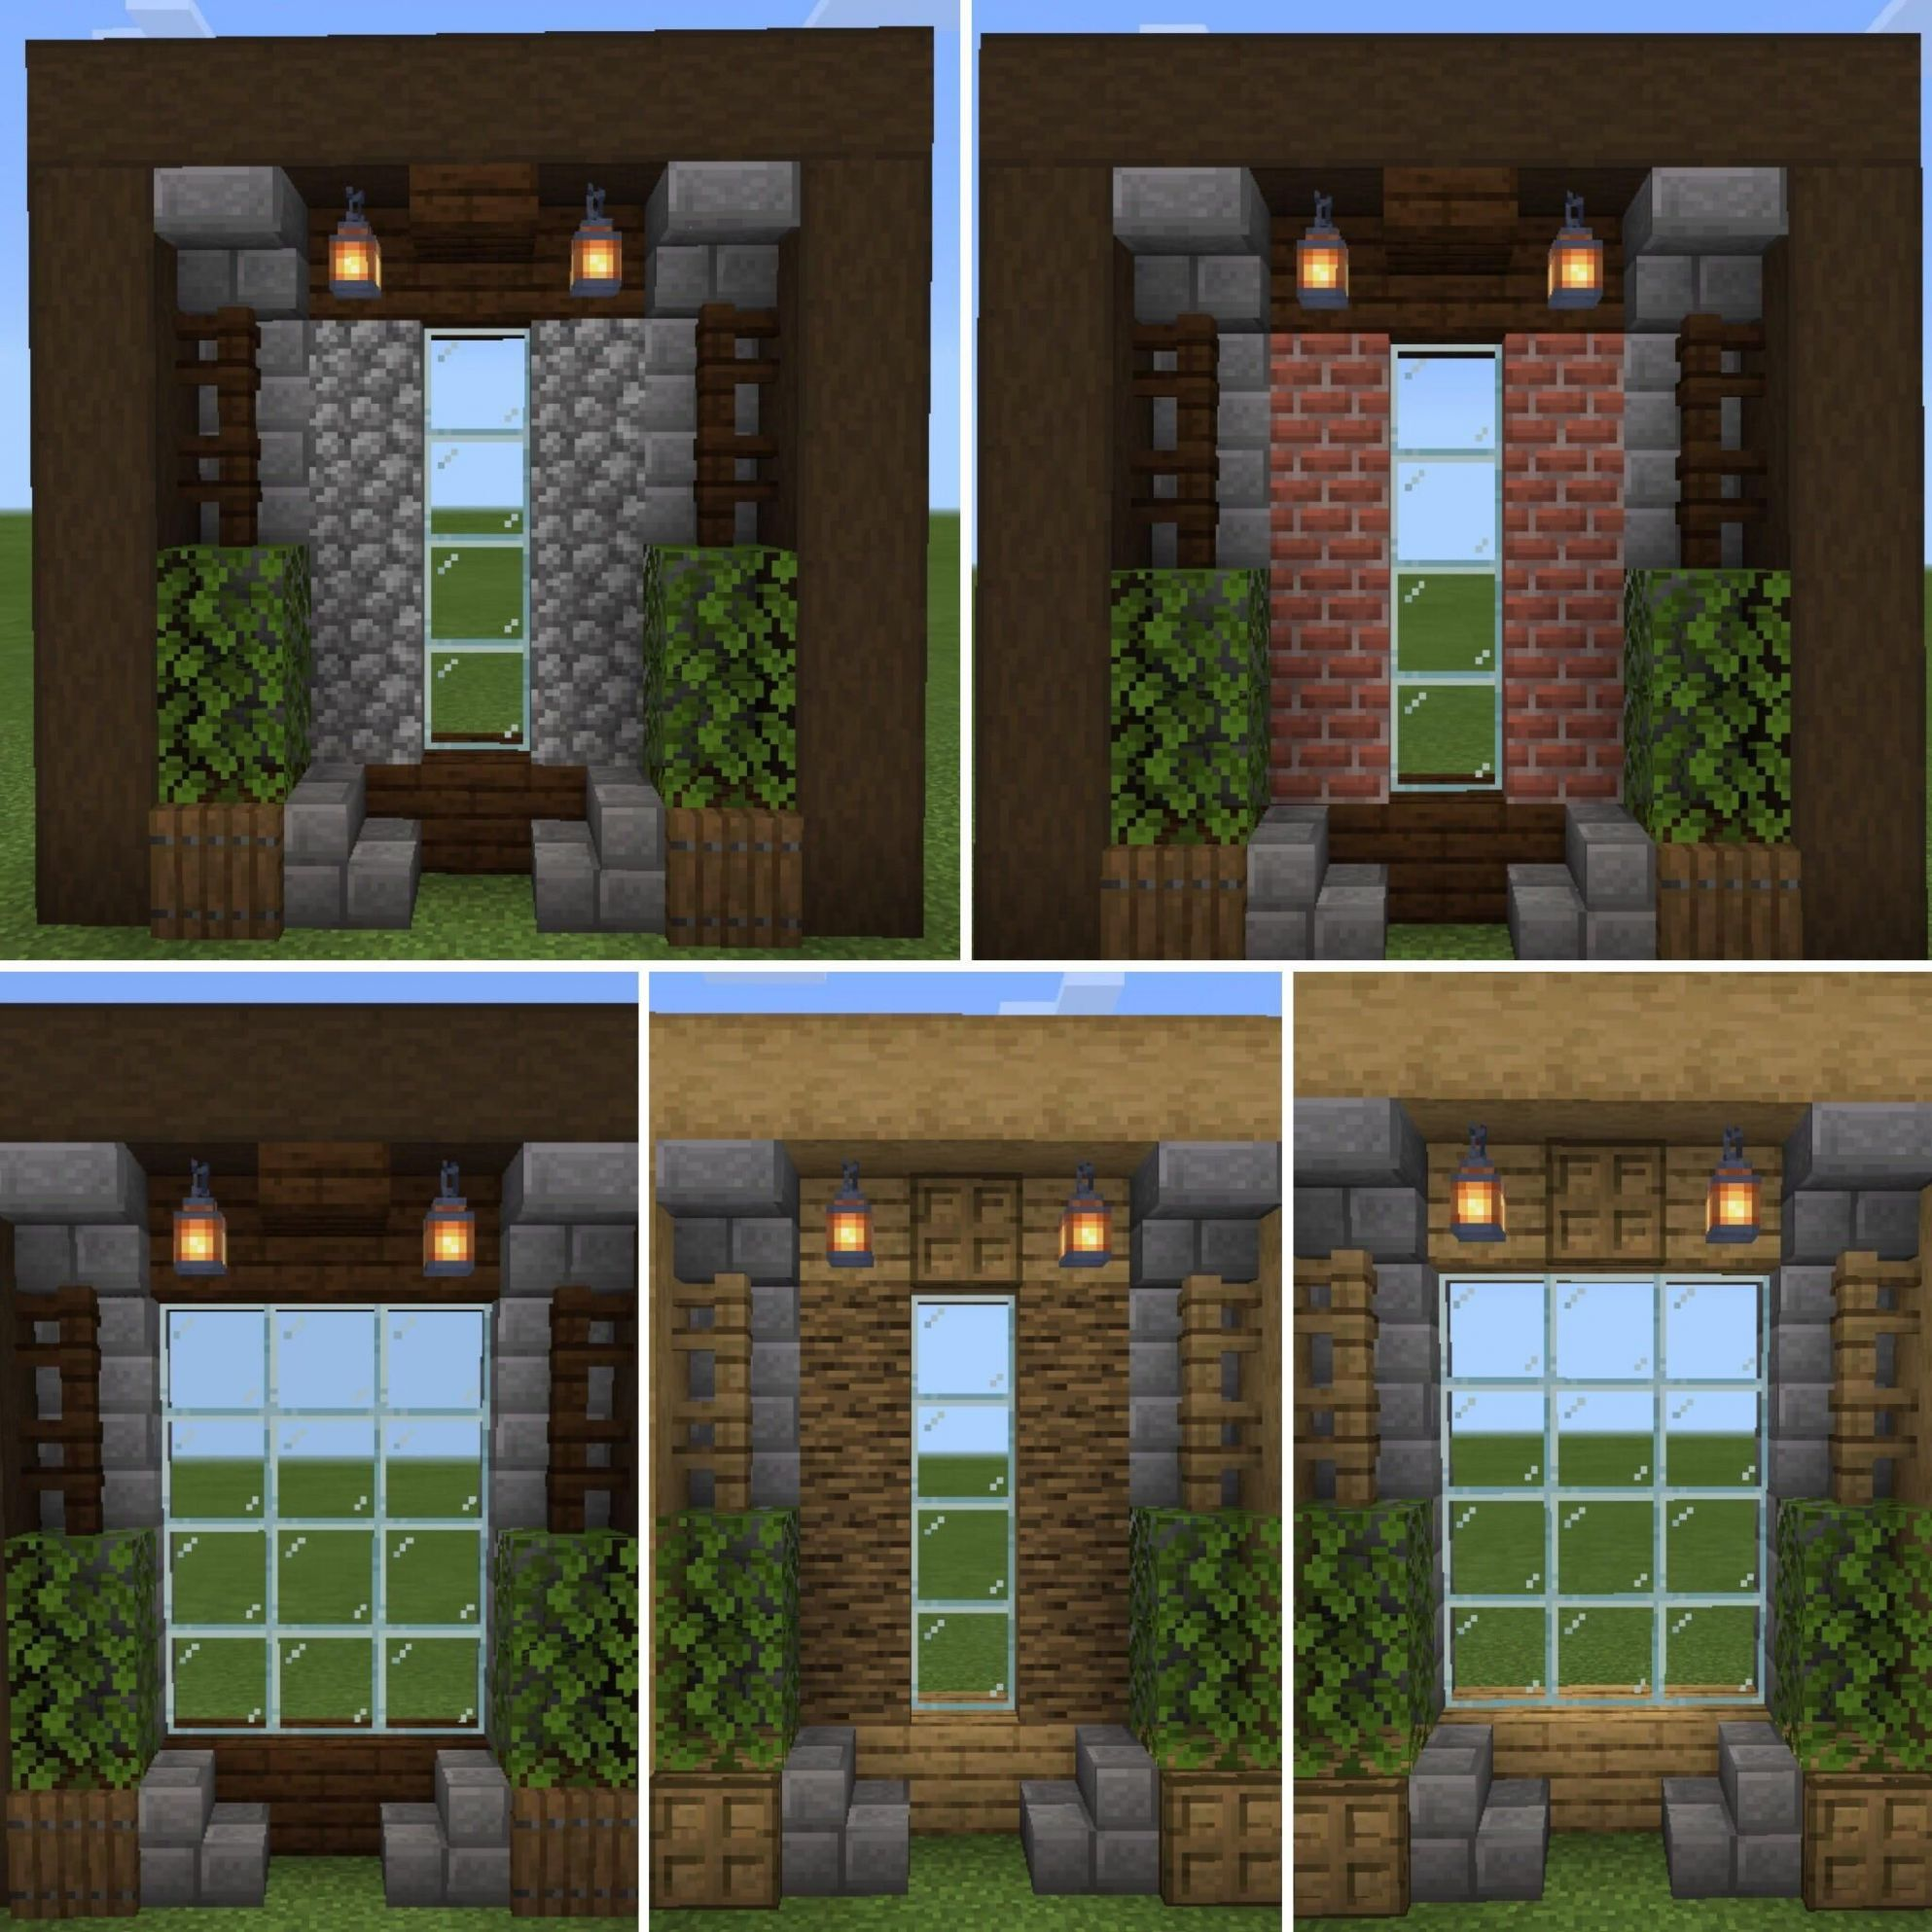 Made some windows for oak and dark oak style. Hope it helps anyone ..